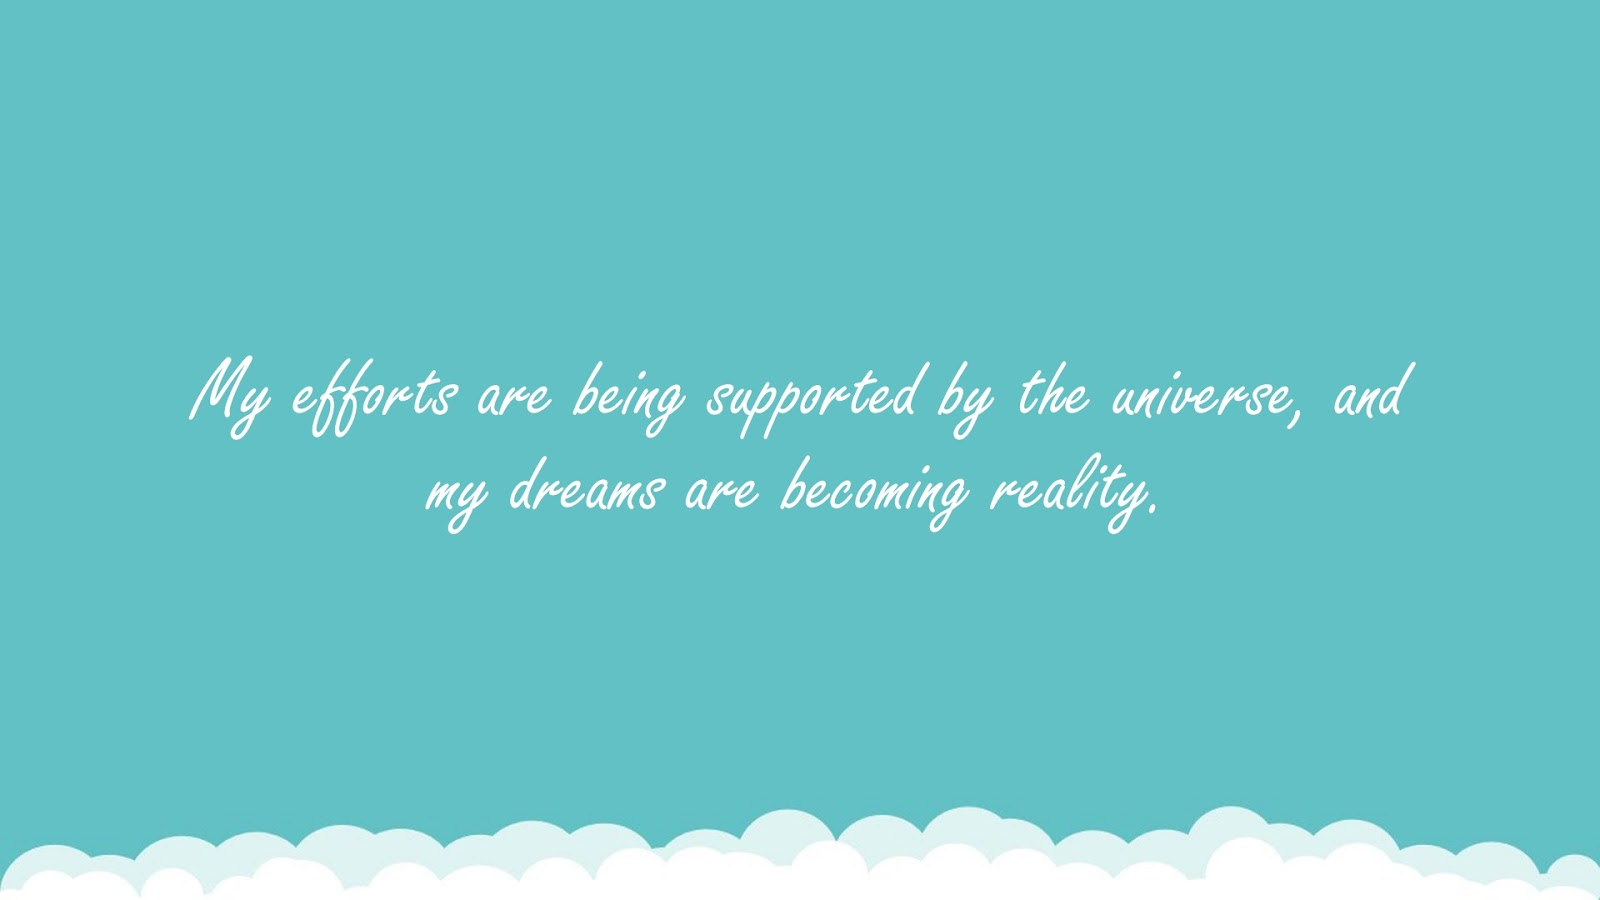 My efforts are being supported by the universe, and my dreams are becoming reality.FALSE